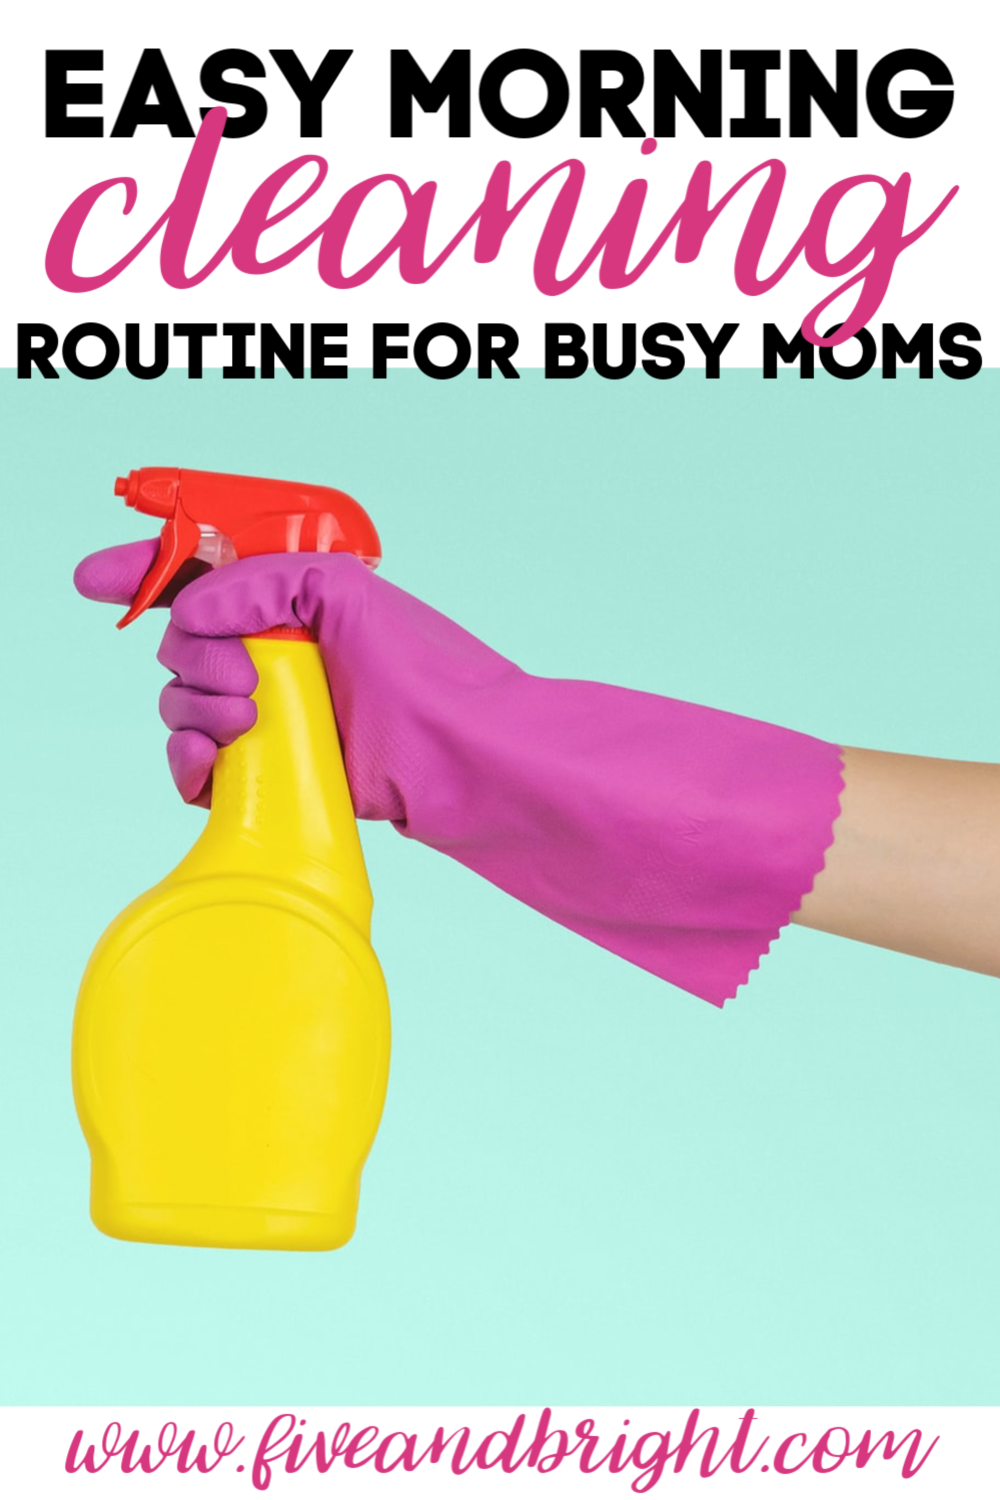 Easy Cleaning Routine for Busy Moms